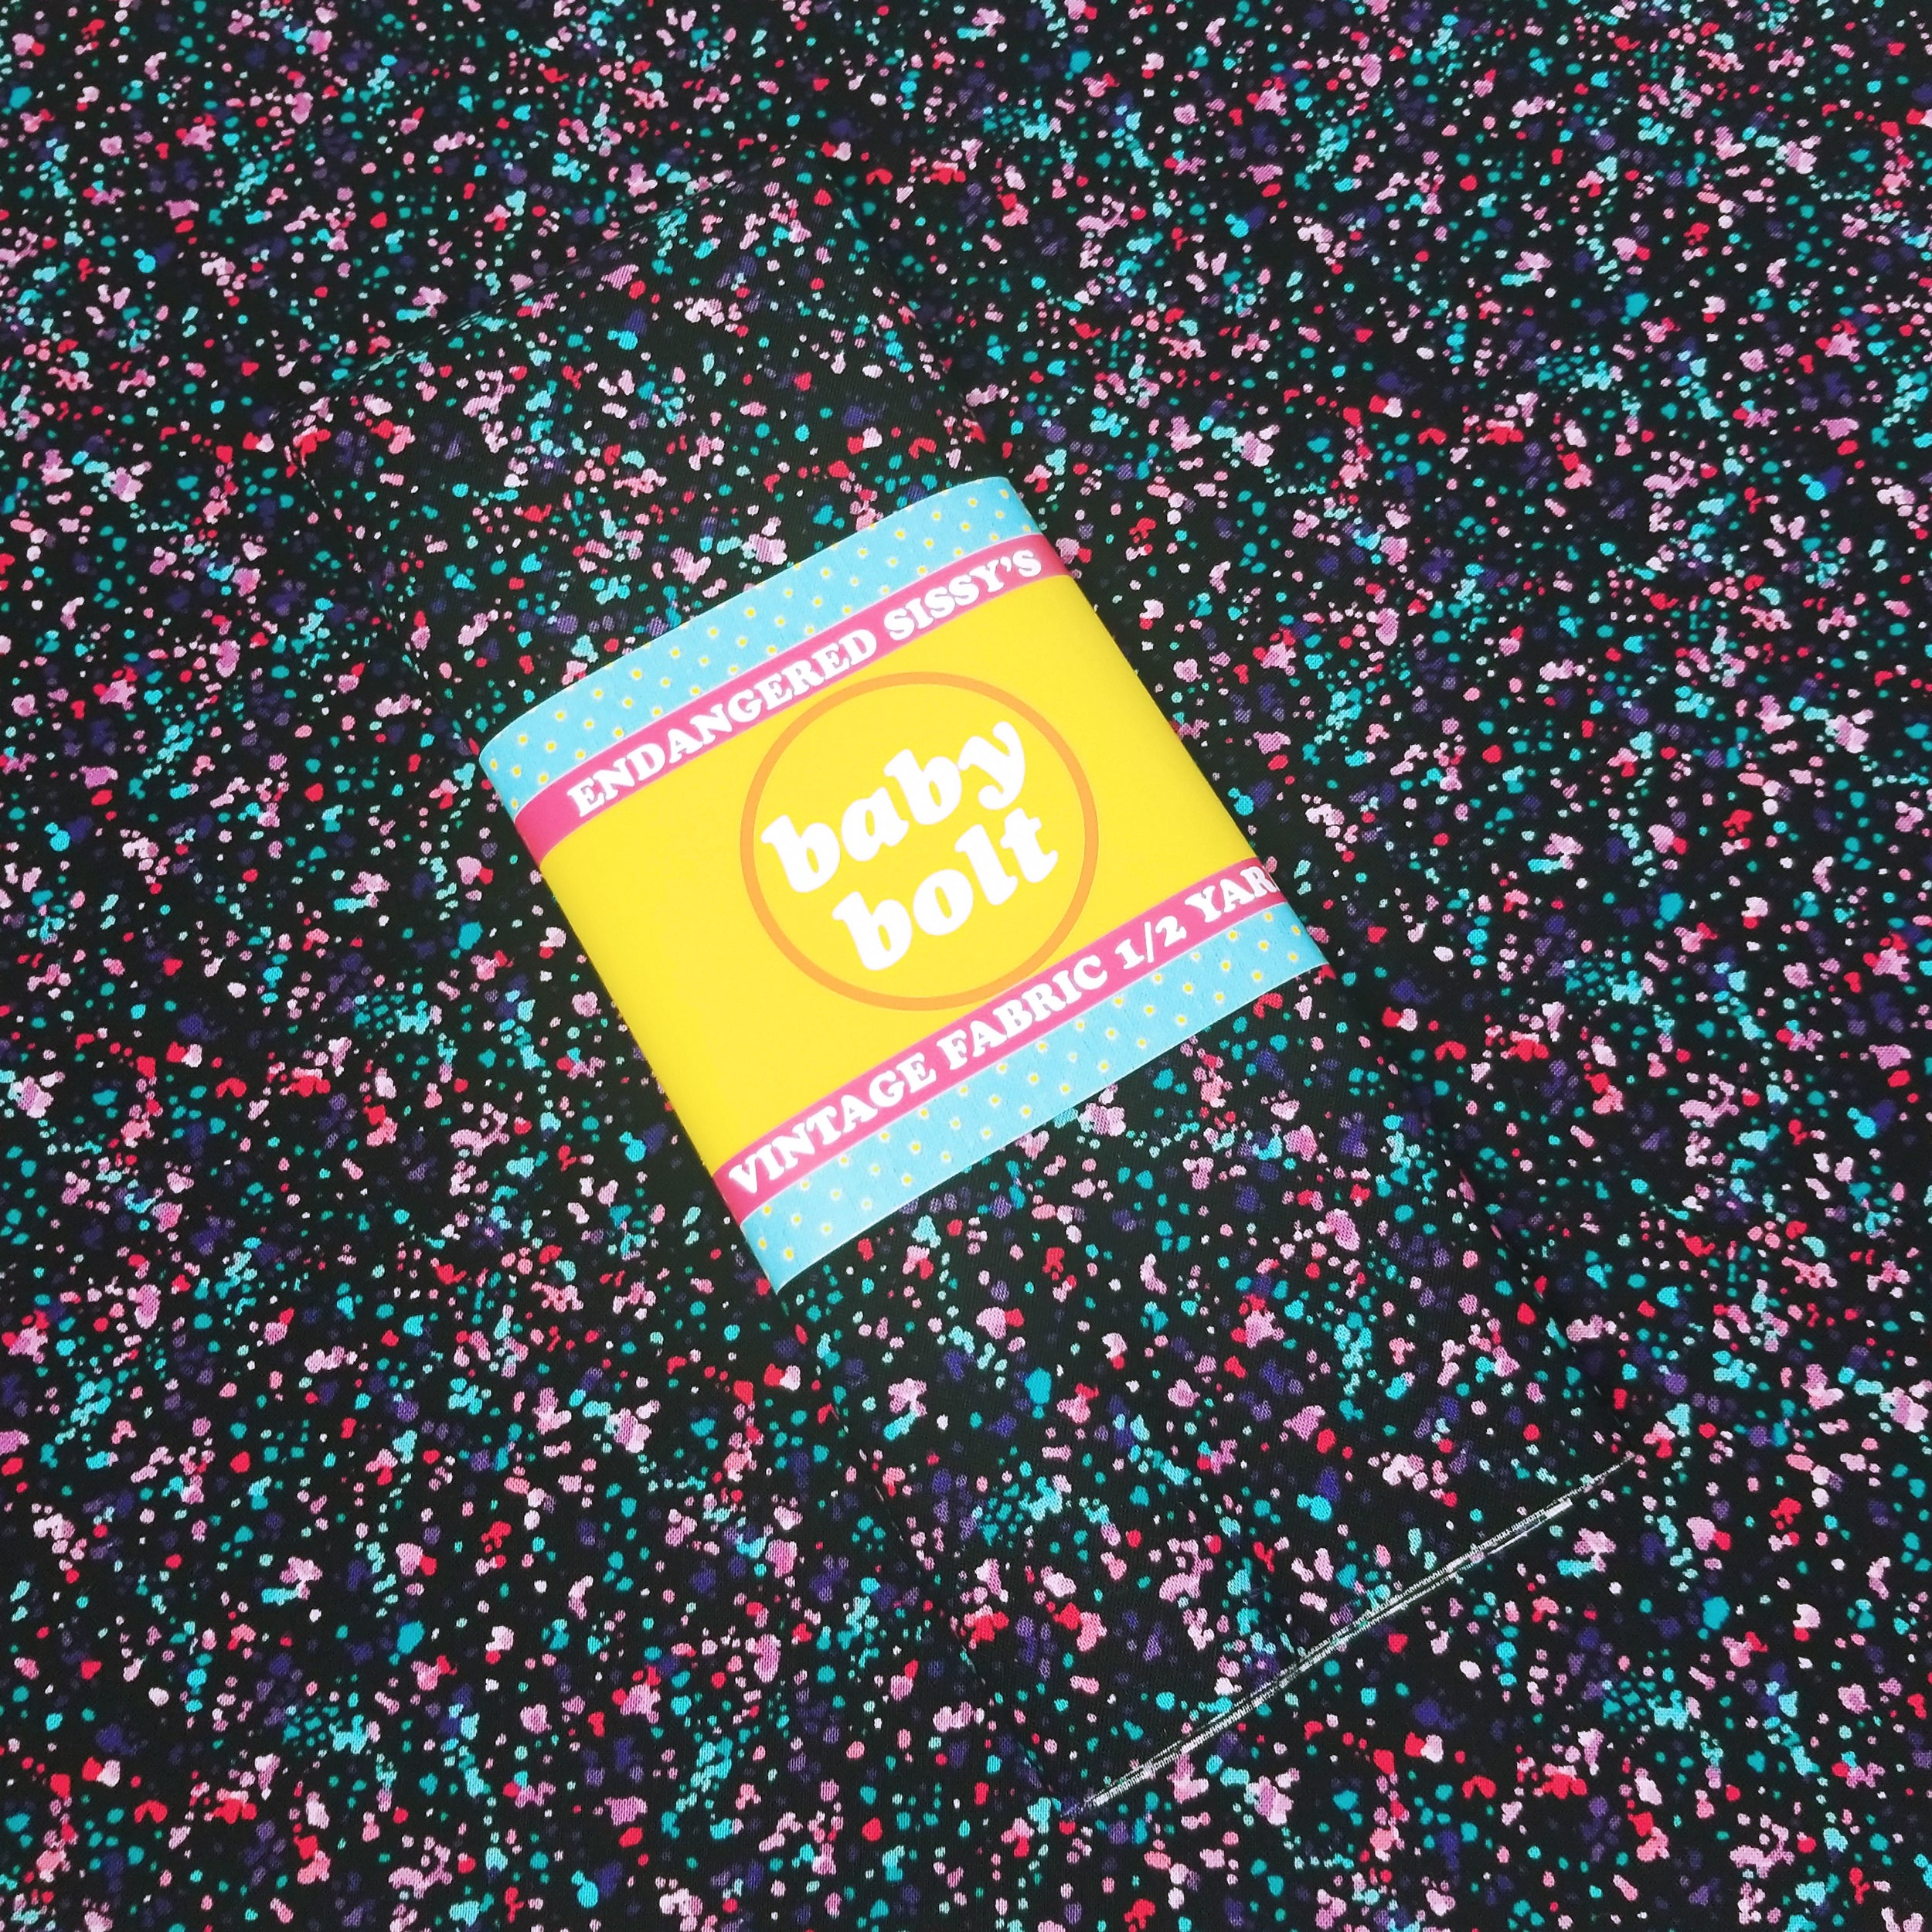 VINTAGE FABRIC BABY BOLT HALF-YARD -  EIGHTIES' SPLATTER PRINT IN BRIGHTS ON BLACK